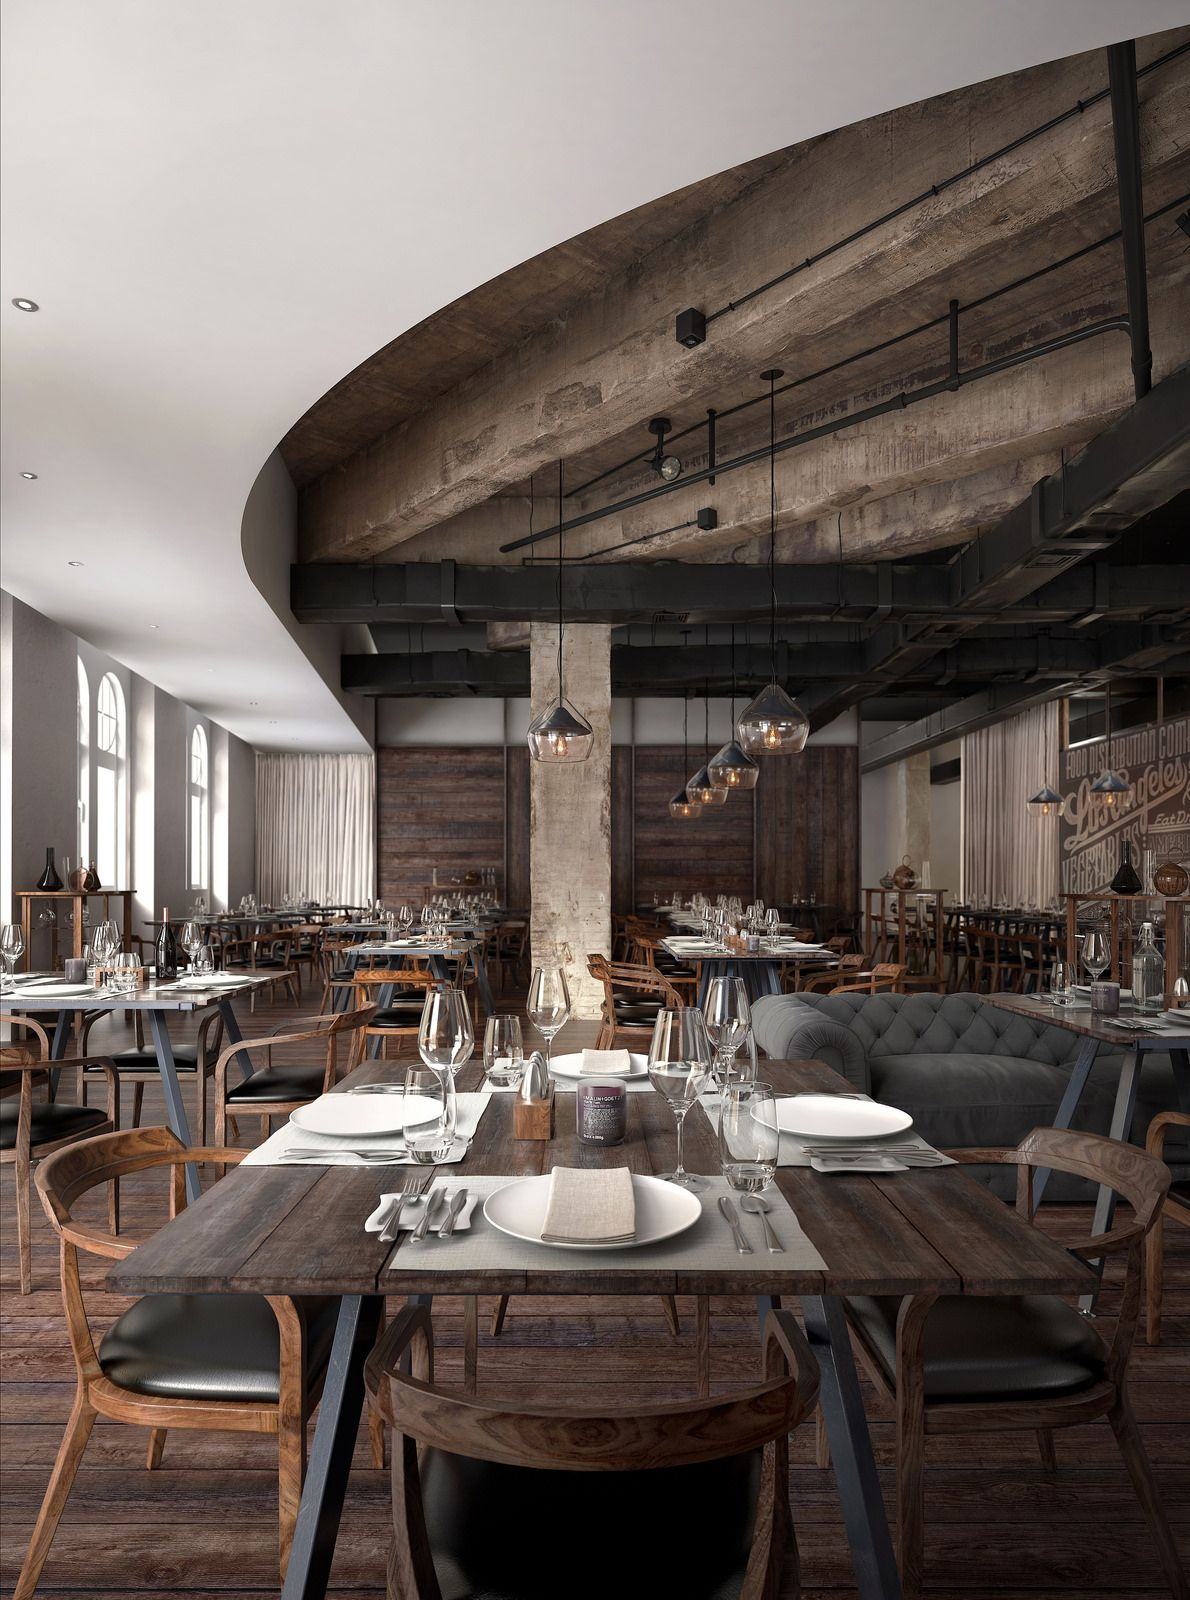 mercato restaurant | vicky bedford | best photo real 3d renders